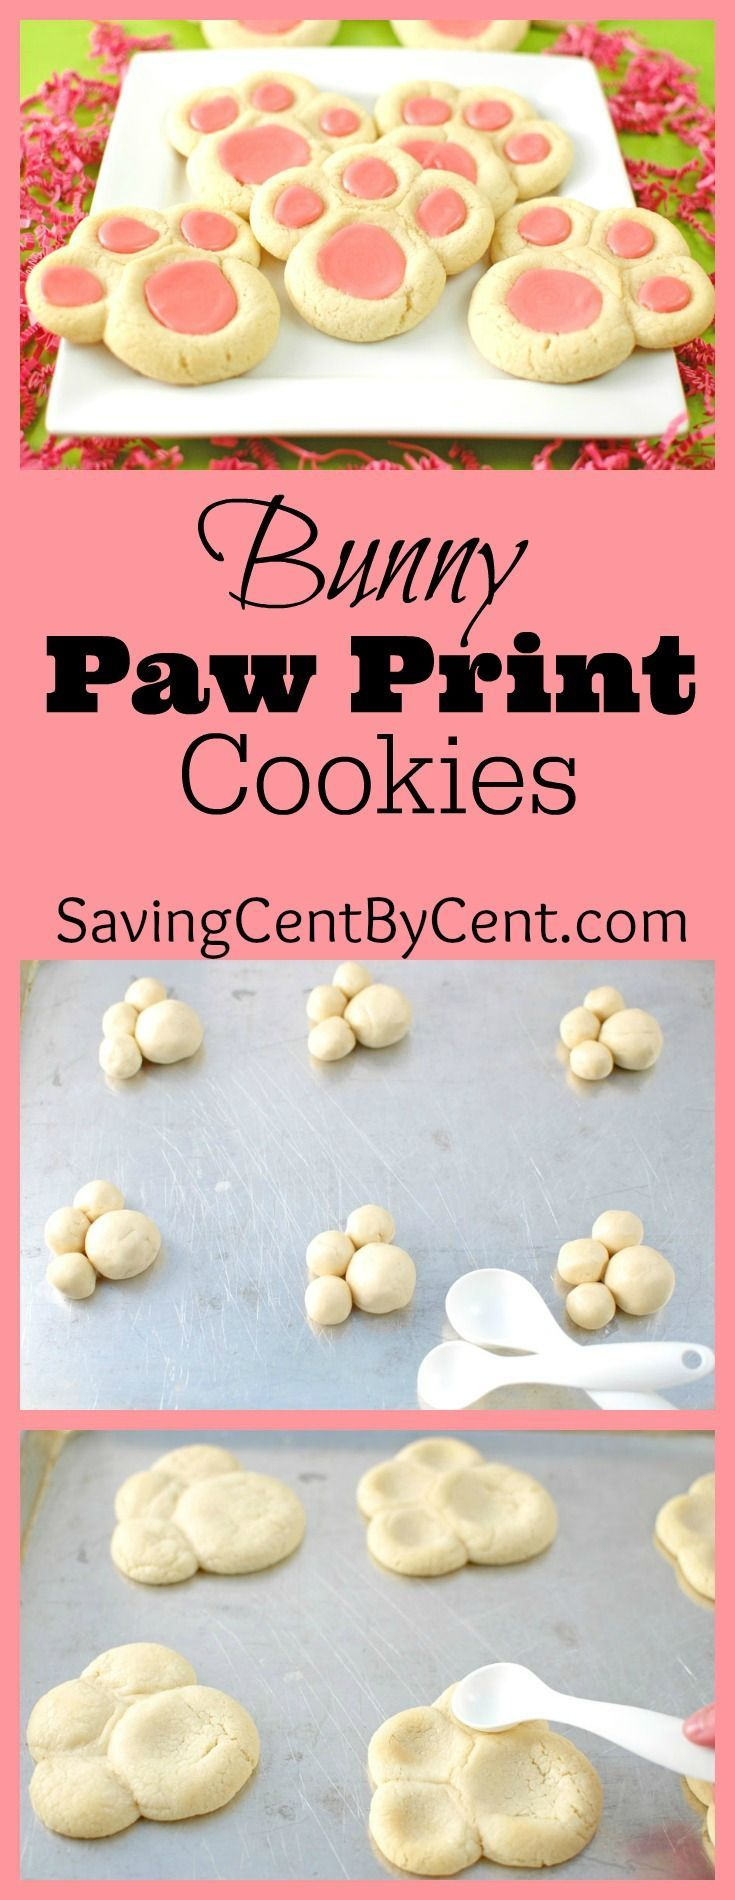 Food faith amp design thanksgiving goodies - Bunny Paw Prints Cookies For Easter